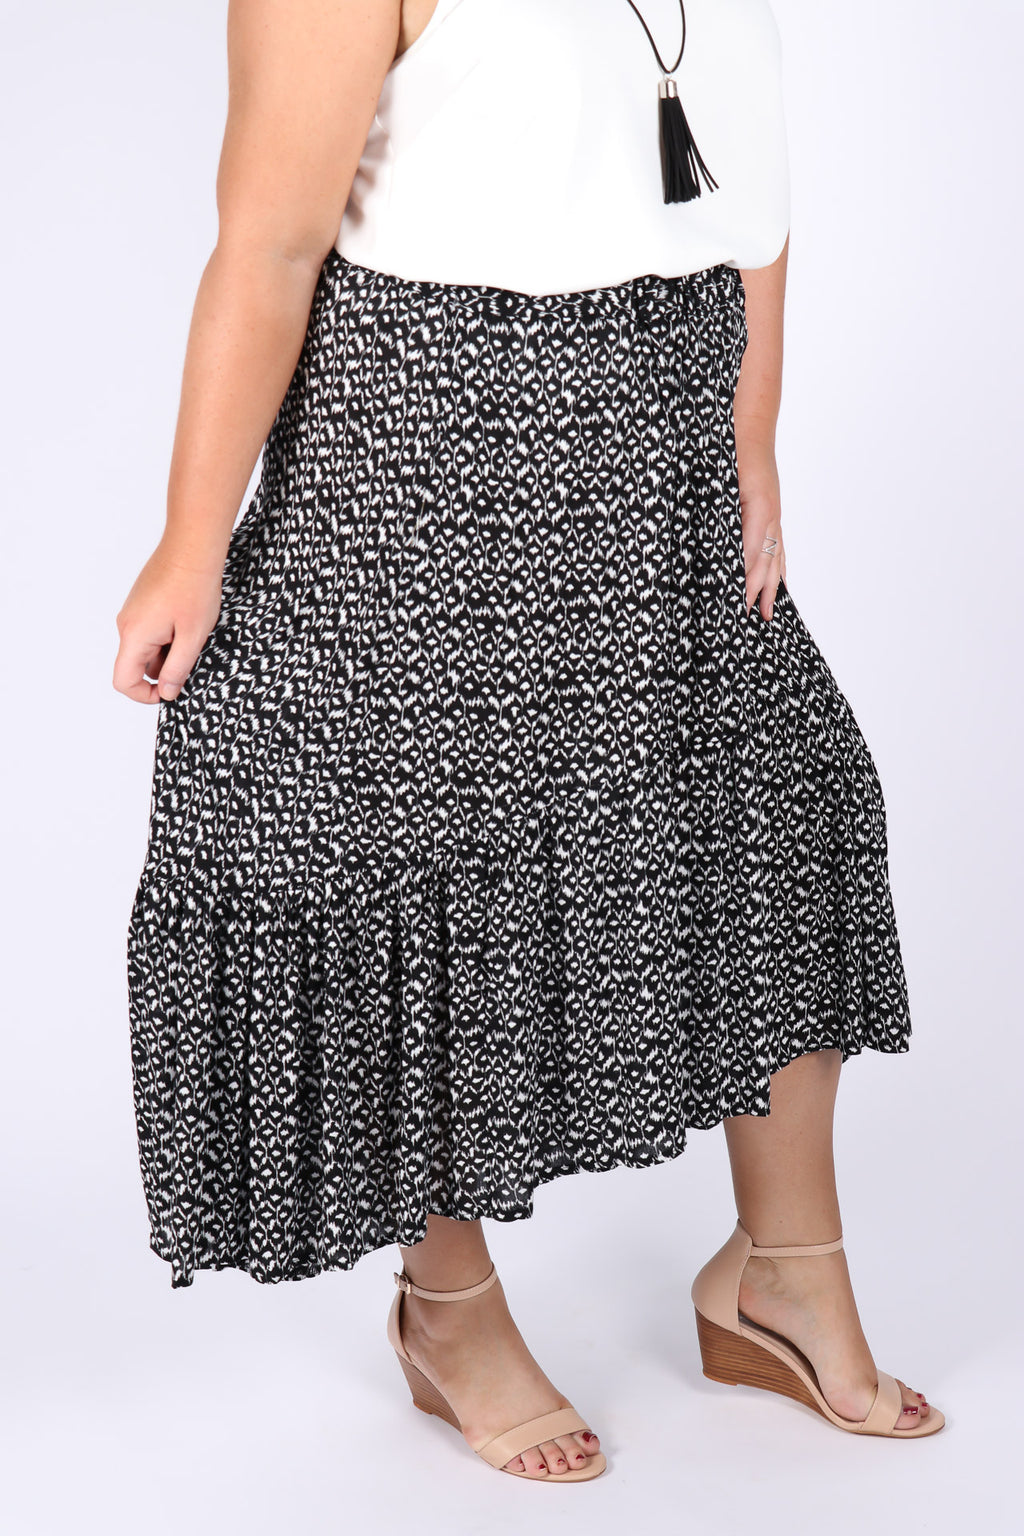 Shoalhaven Skirt in Black